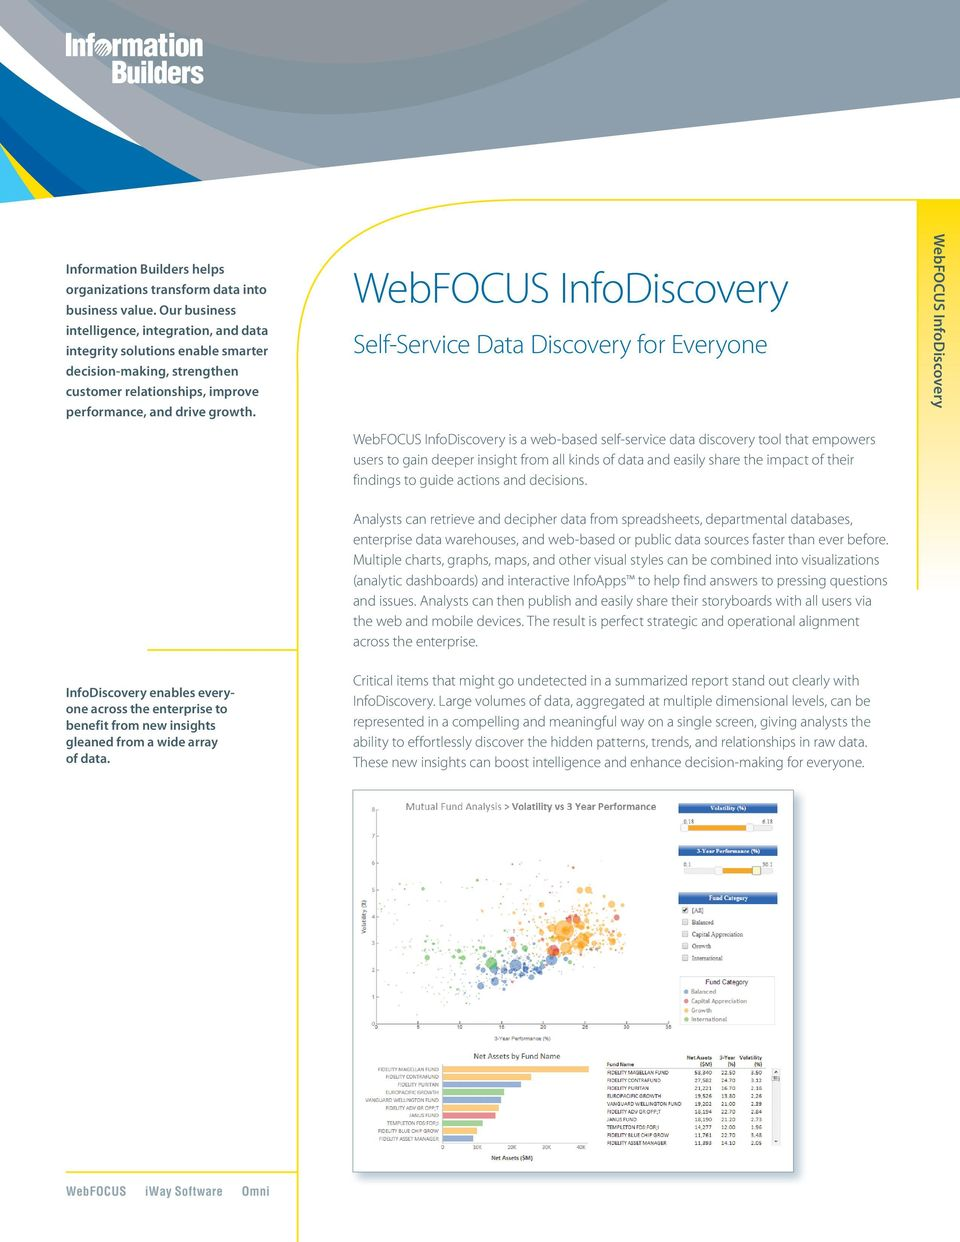 WebFOCUS InfoDiscovery Self-Service Data Discovery for Everyone WebFOCUS InfoDiscovery is a web-based self-service data discovery tool that empowers users to gain deeper insight from all kinds of